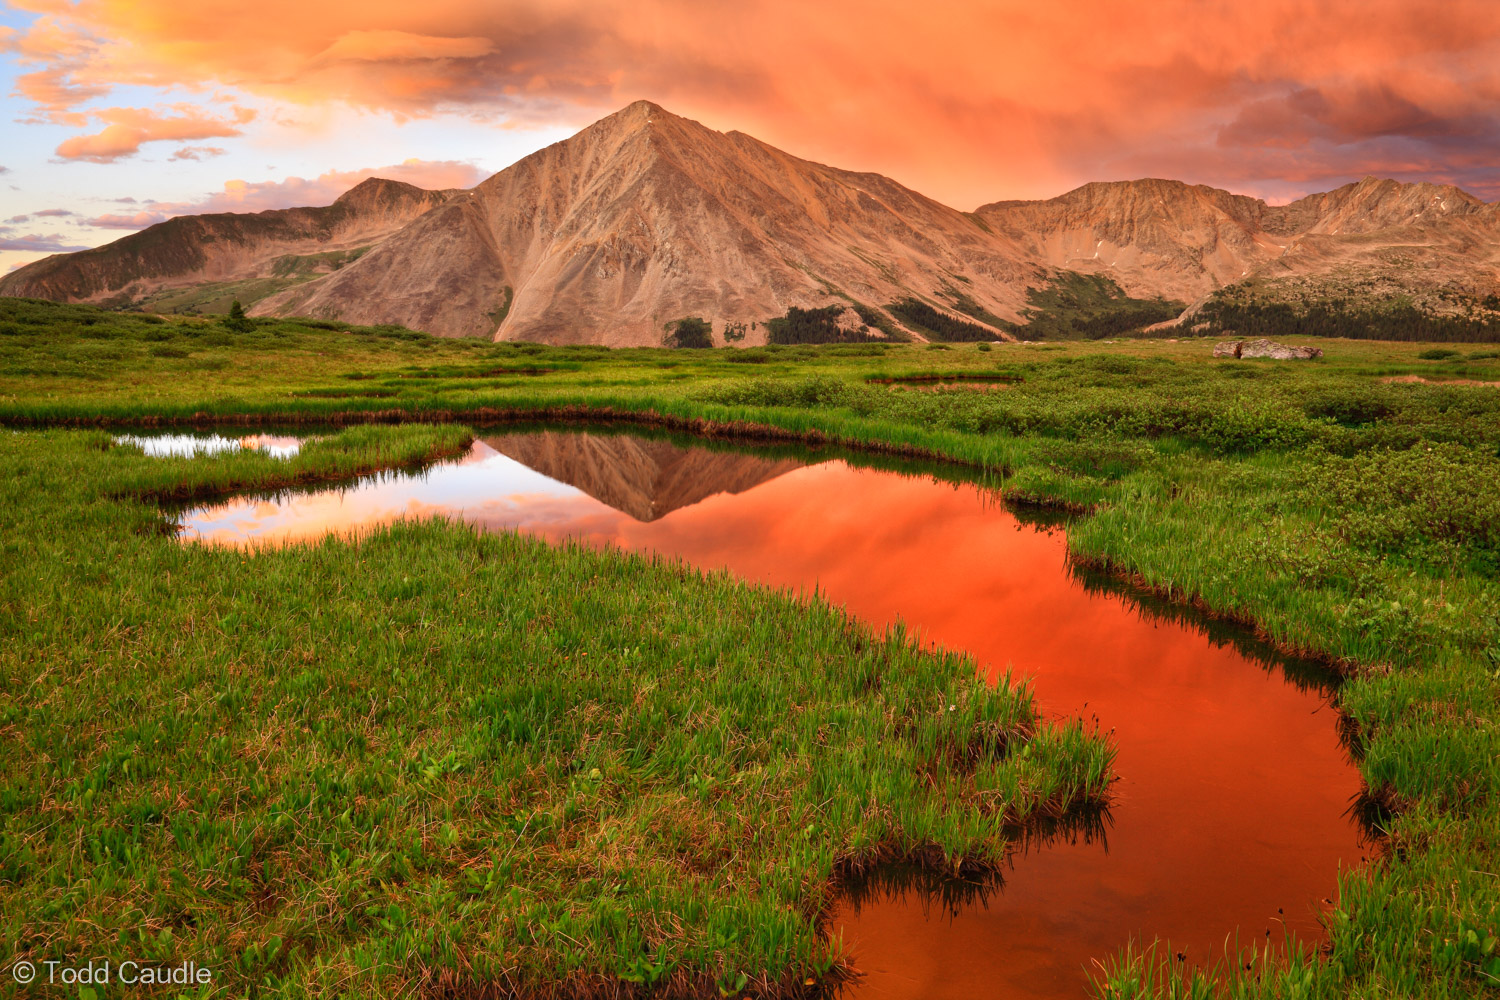 An amazing sunset unfolds over Huron Peak in the Sawatch Range.